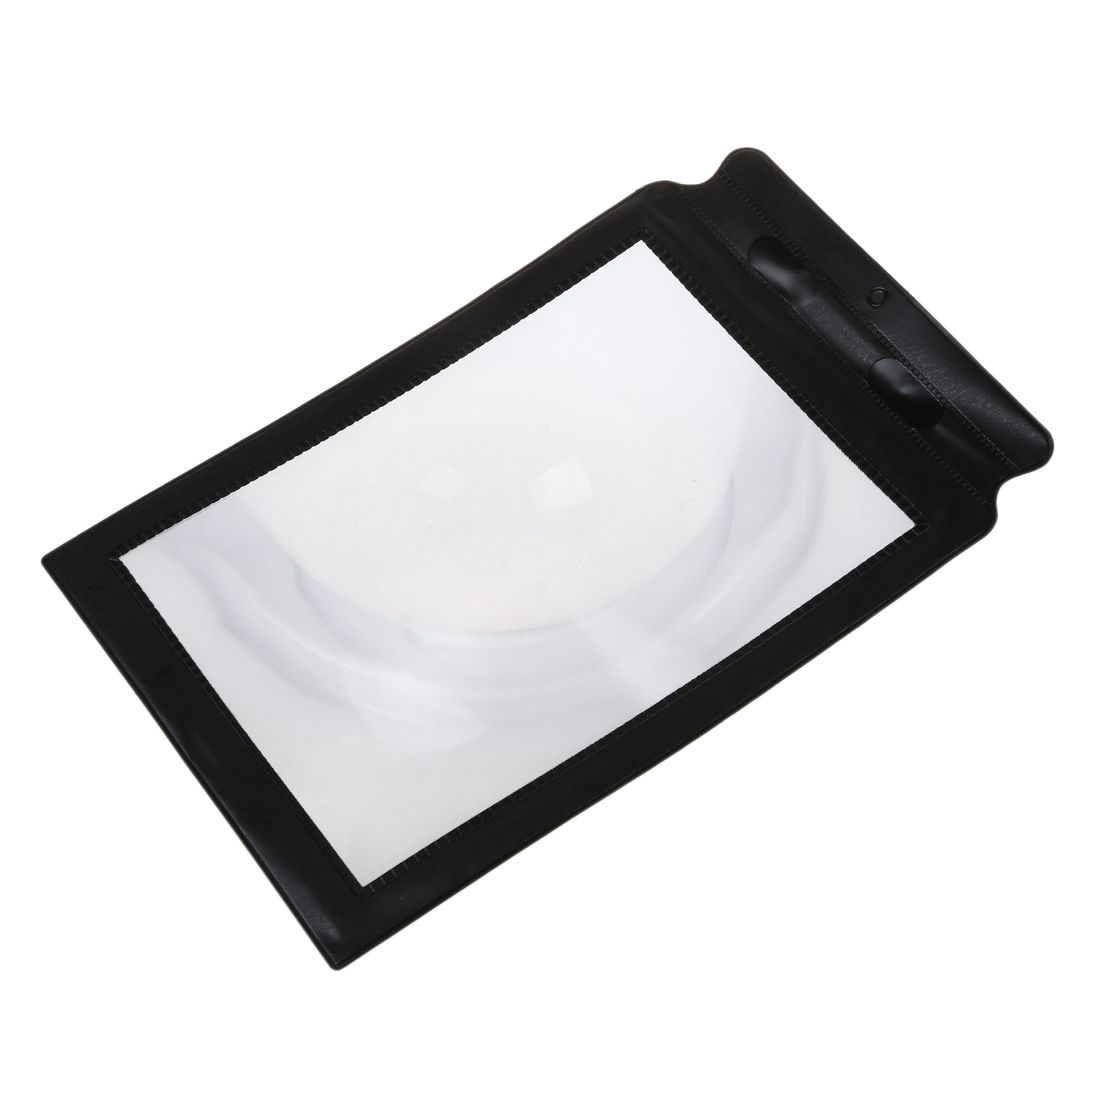 a4 full page 3x magnifier sheet large magnifying glass book reading aid lenschina